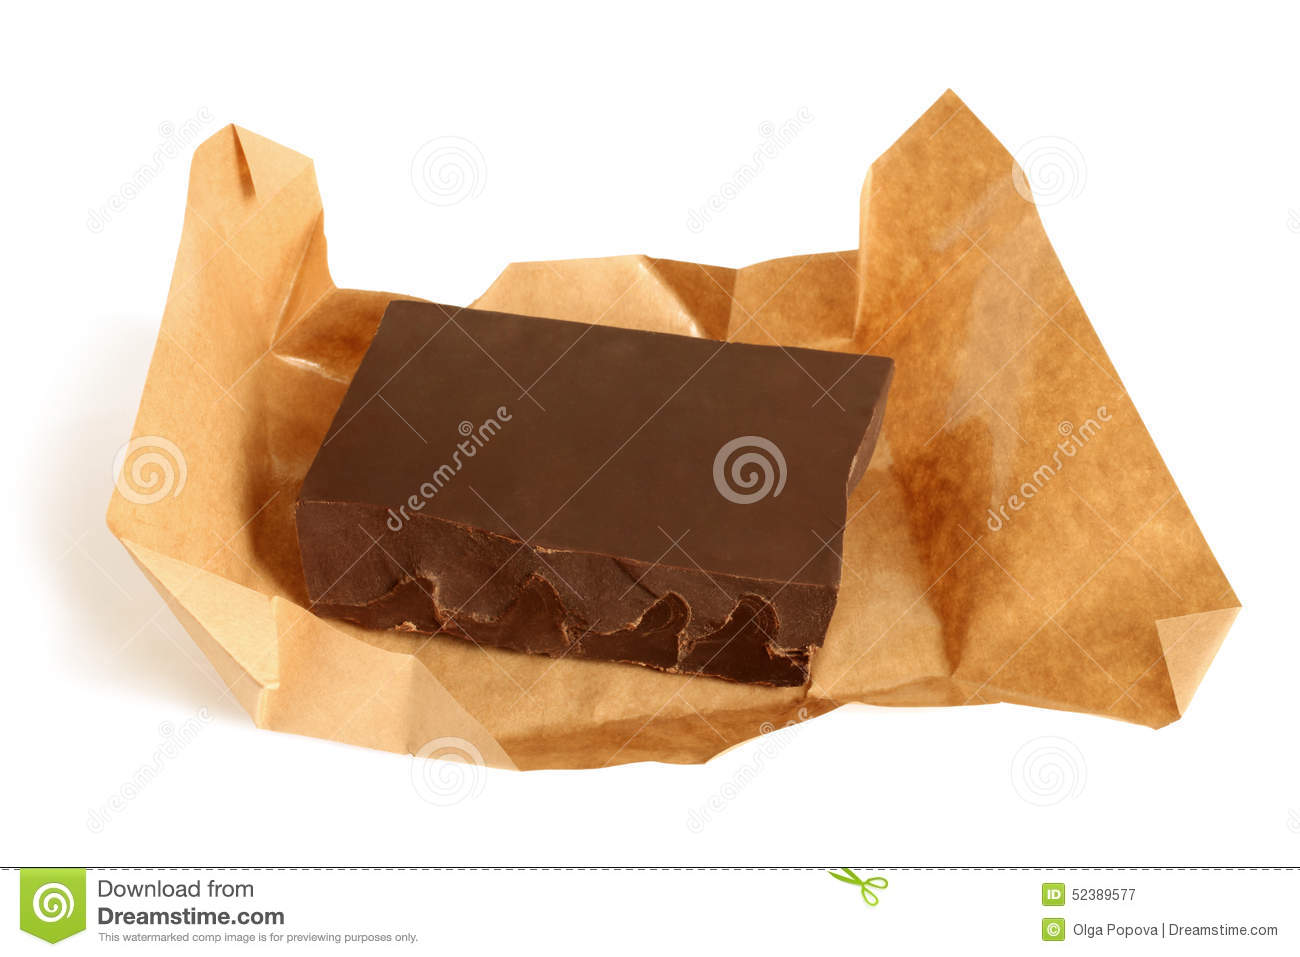 dark chocolate essay Dark chocolate contains a large number of antioxidants (nearly 8 times the number found in strawberries) flavonoids also help relax blood pressure through the production of nitric oxide and balance certain hormones in the body.